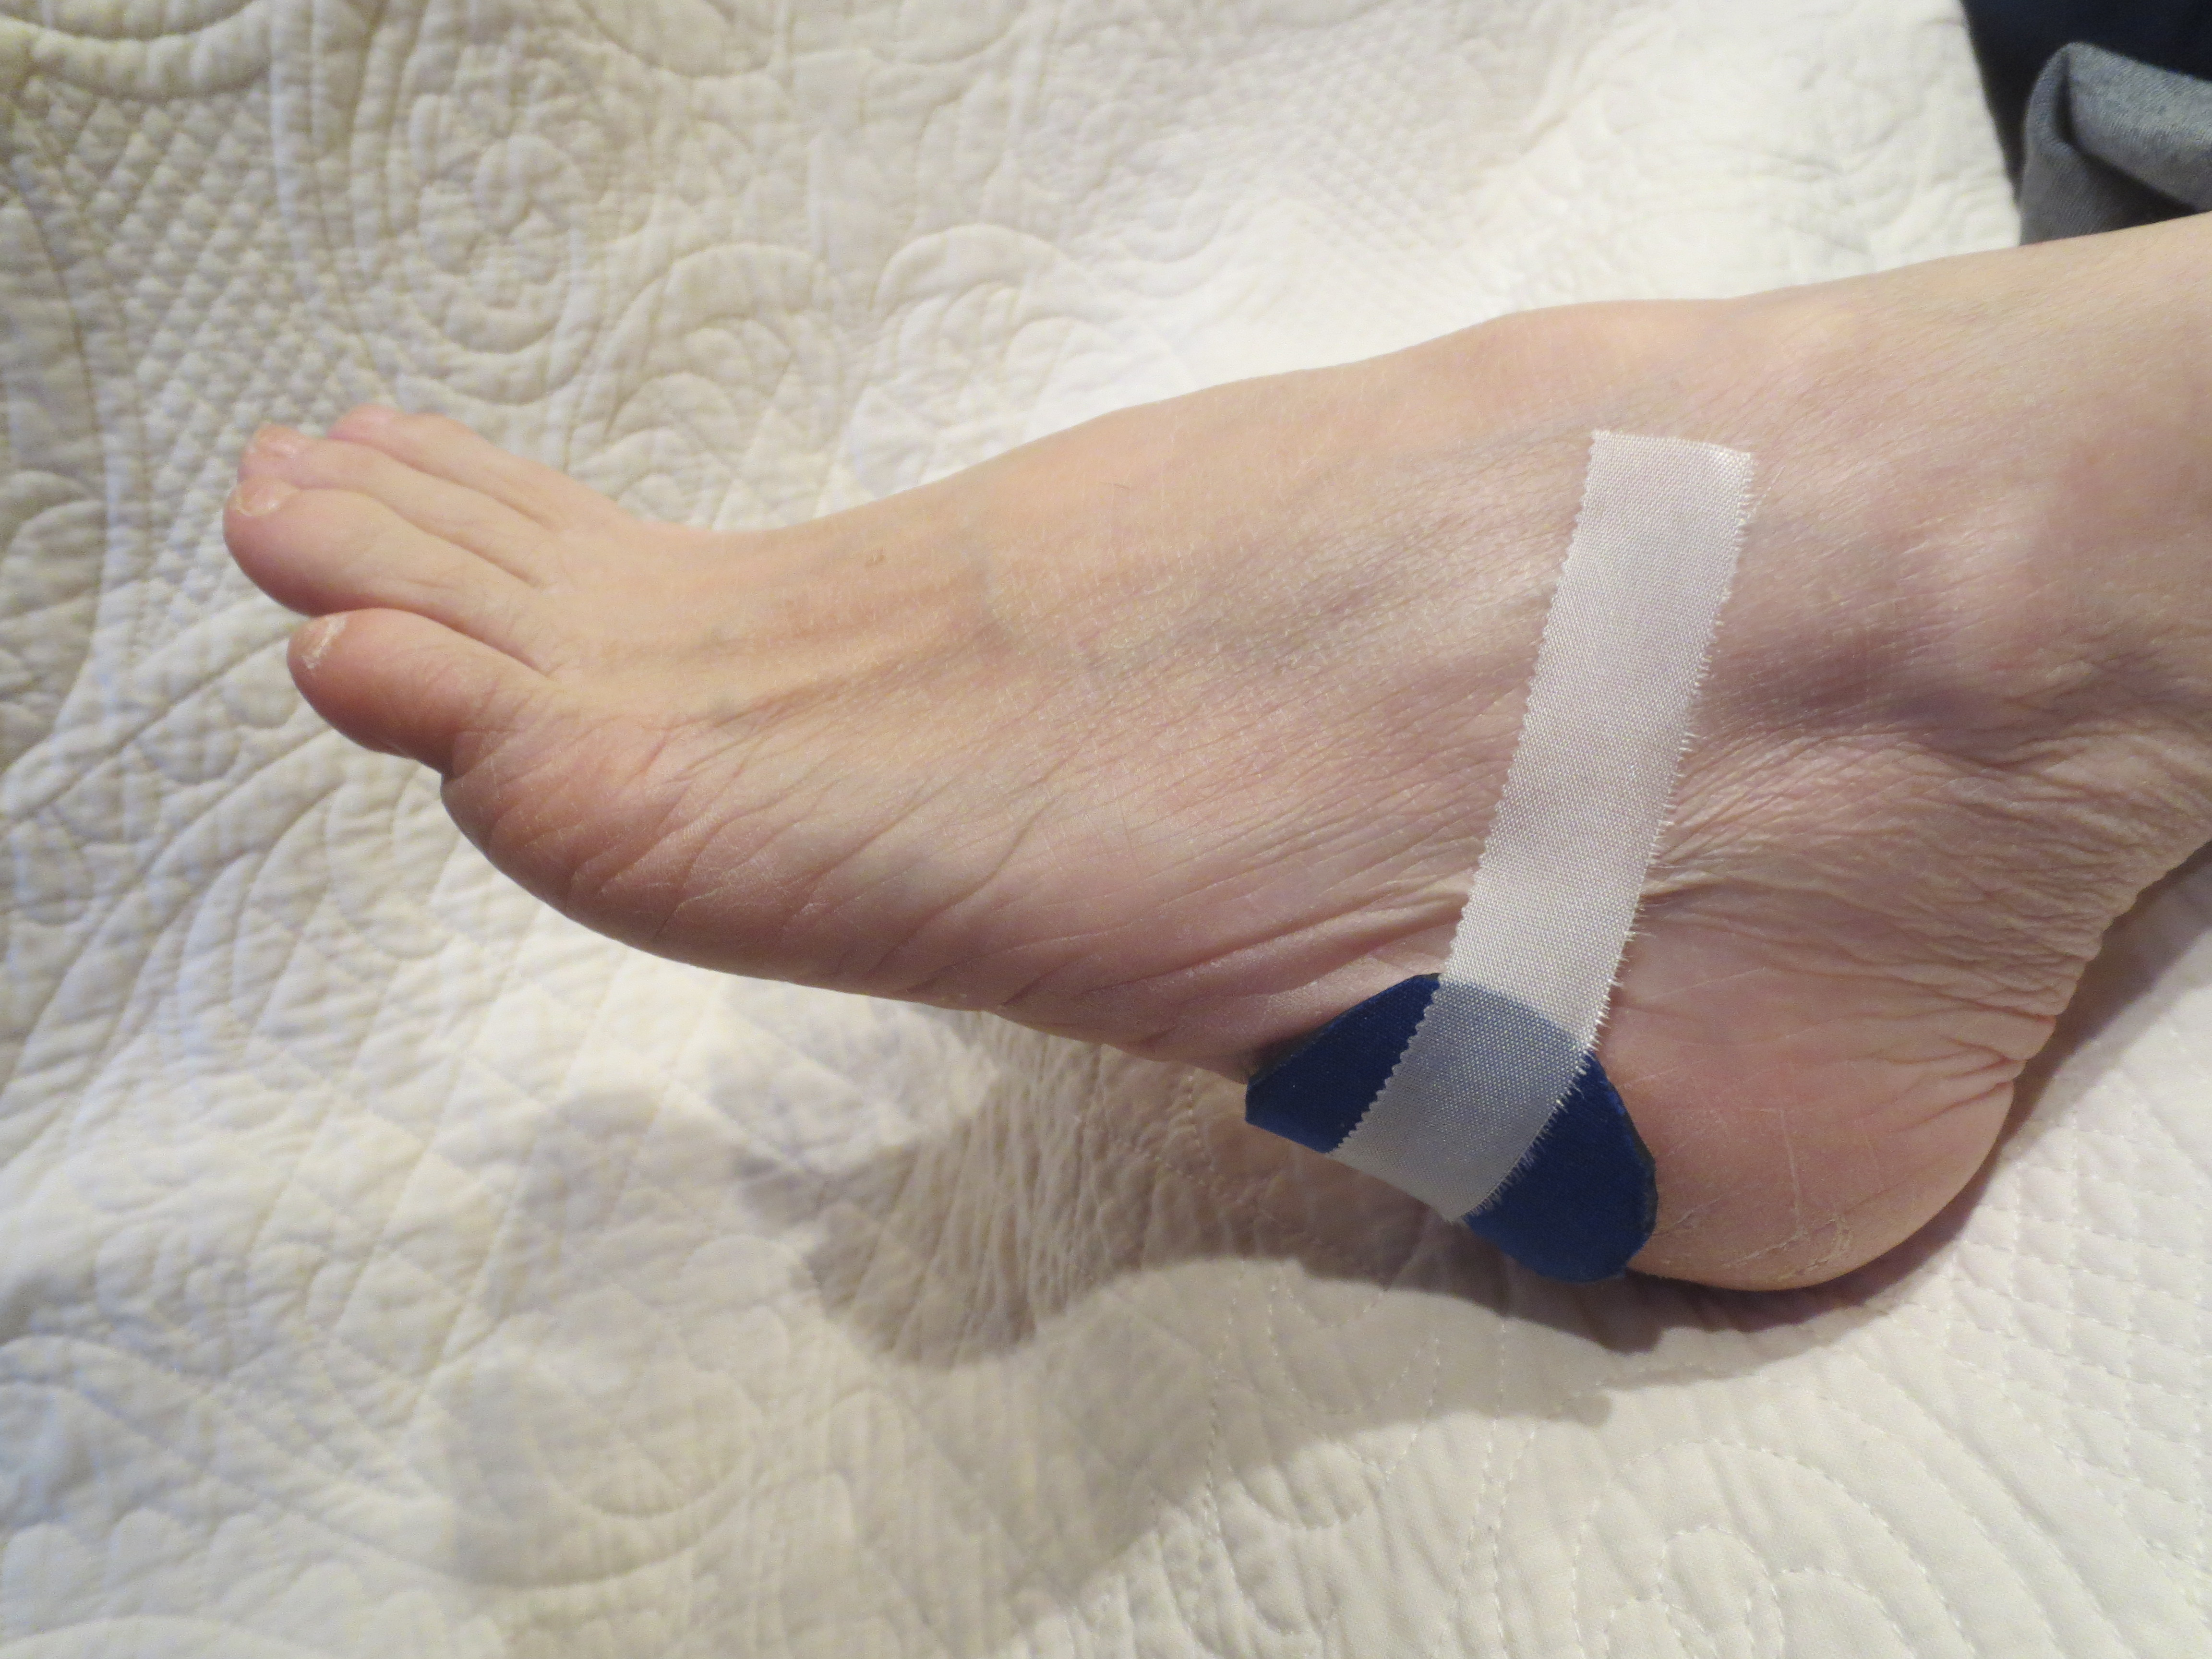 This photo shows the study pronating device taped to the lateral aspect.